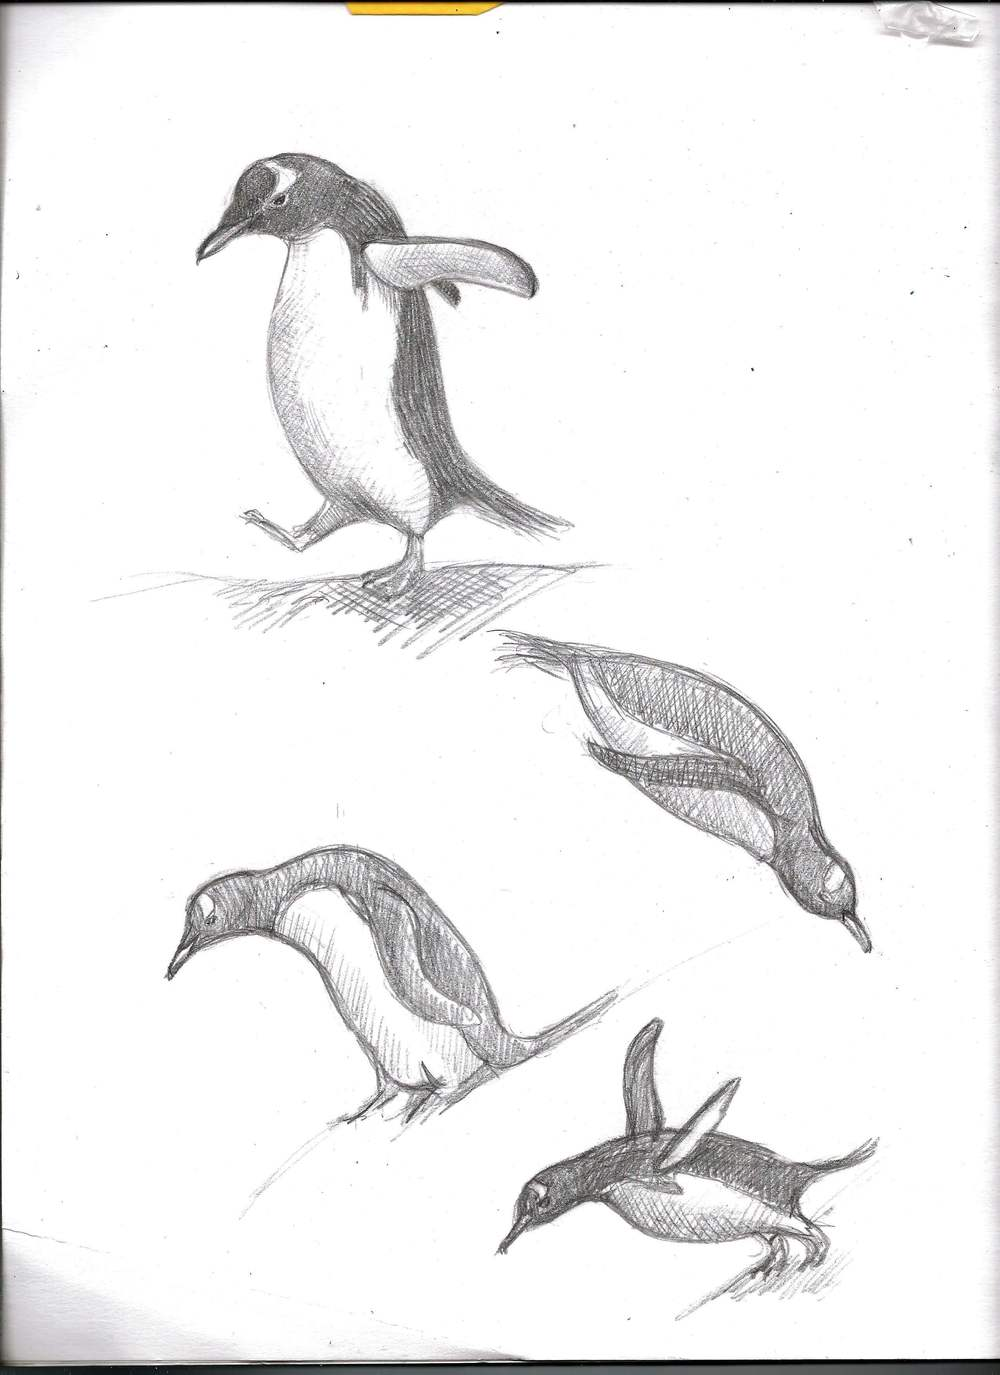 penguinsketches.jpg